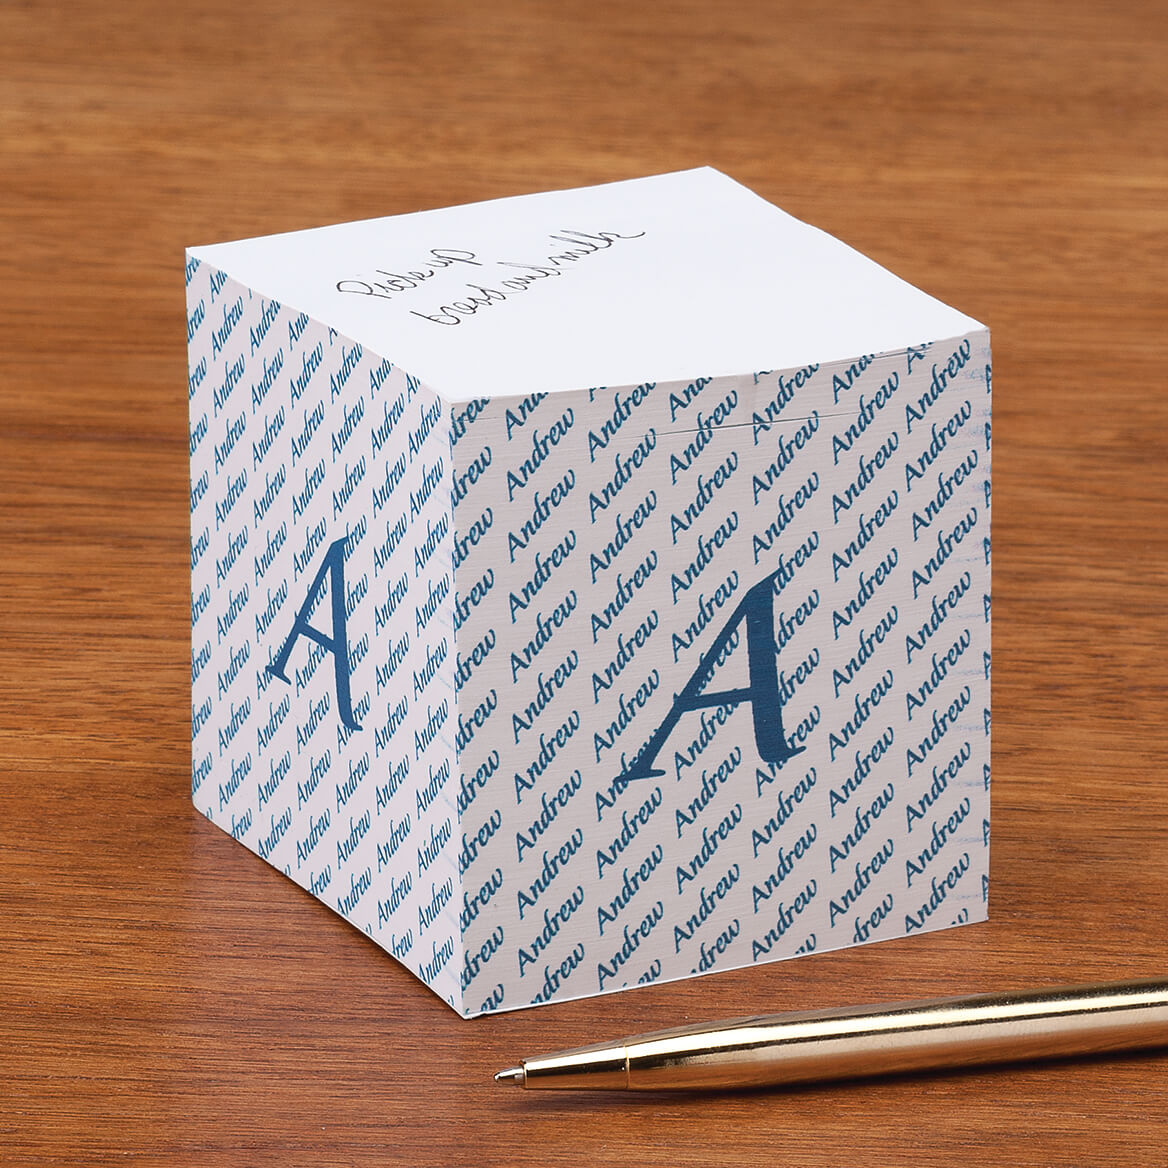 Personalized Initial Self Stick Note Cube - Miles Kimball